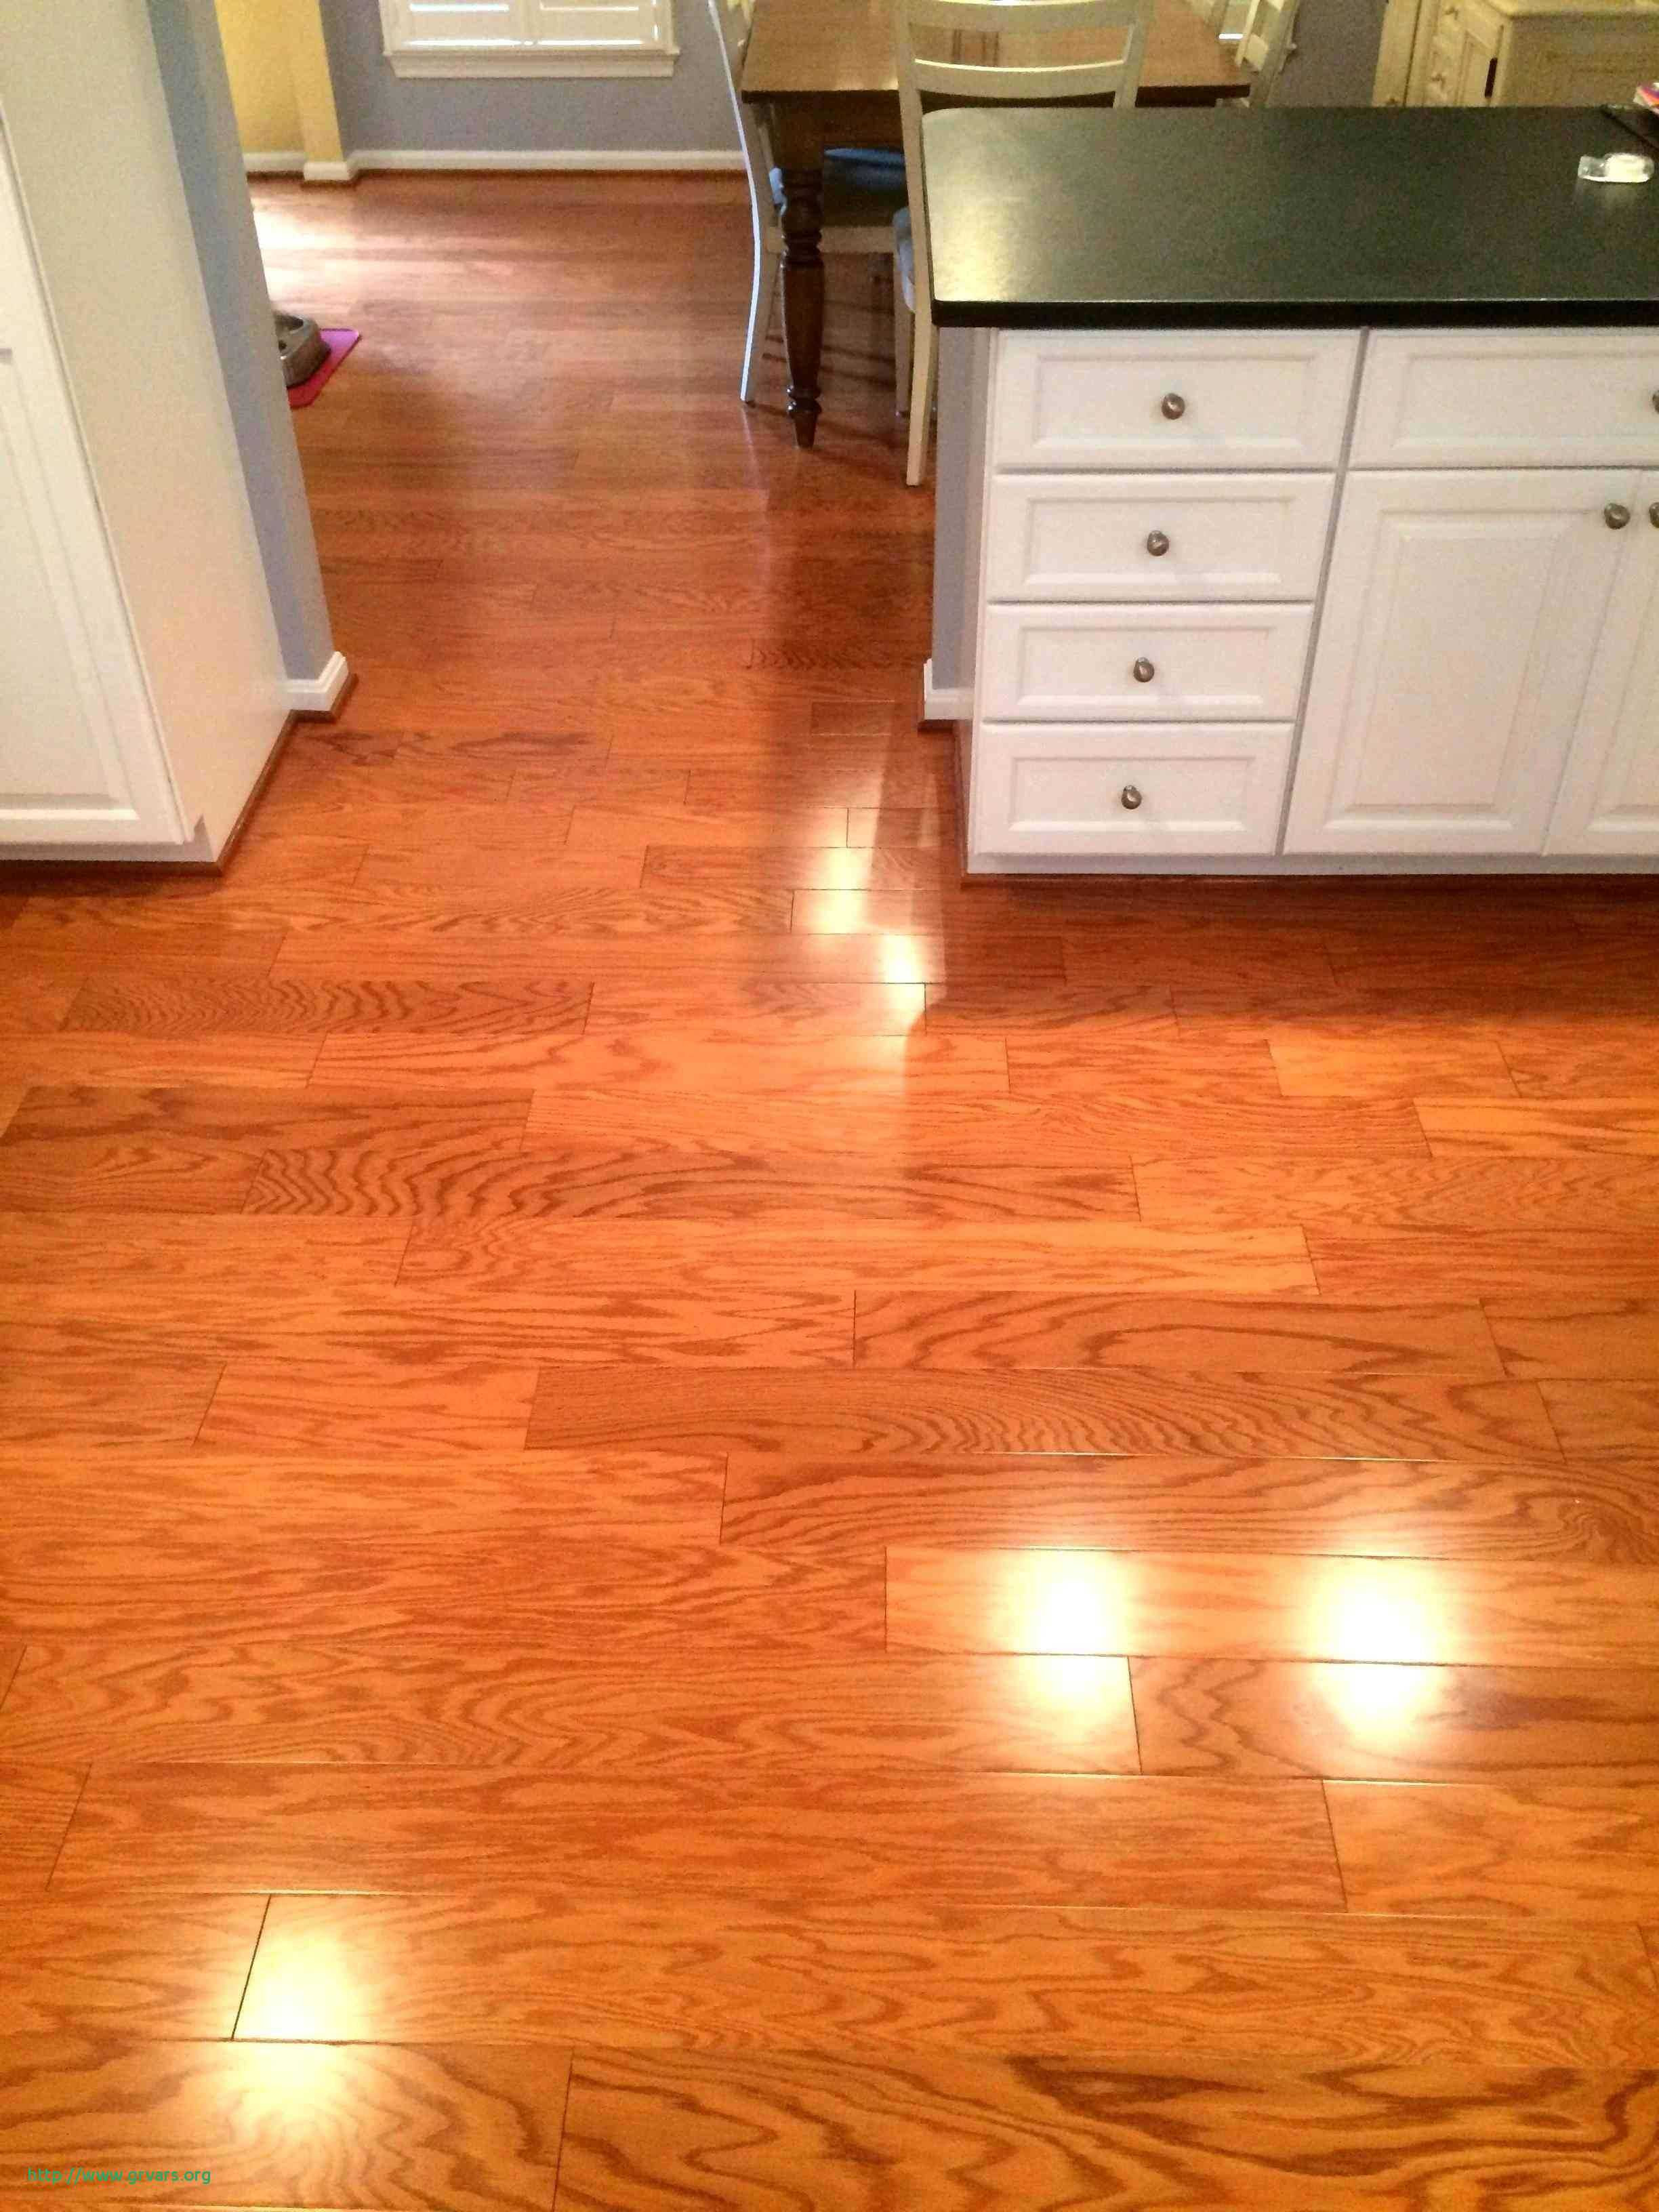 hardwood floor edges of 20 impressionnant where to buy bruce hardwood floor cleaner ideas blog for 20 photos of the 20 impressionnant where to buy bruce hardwood floor cleaner